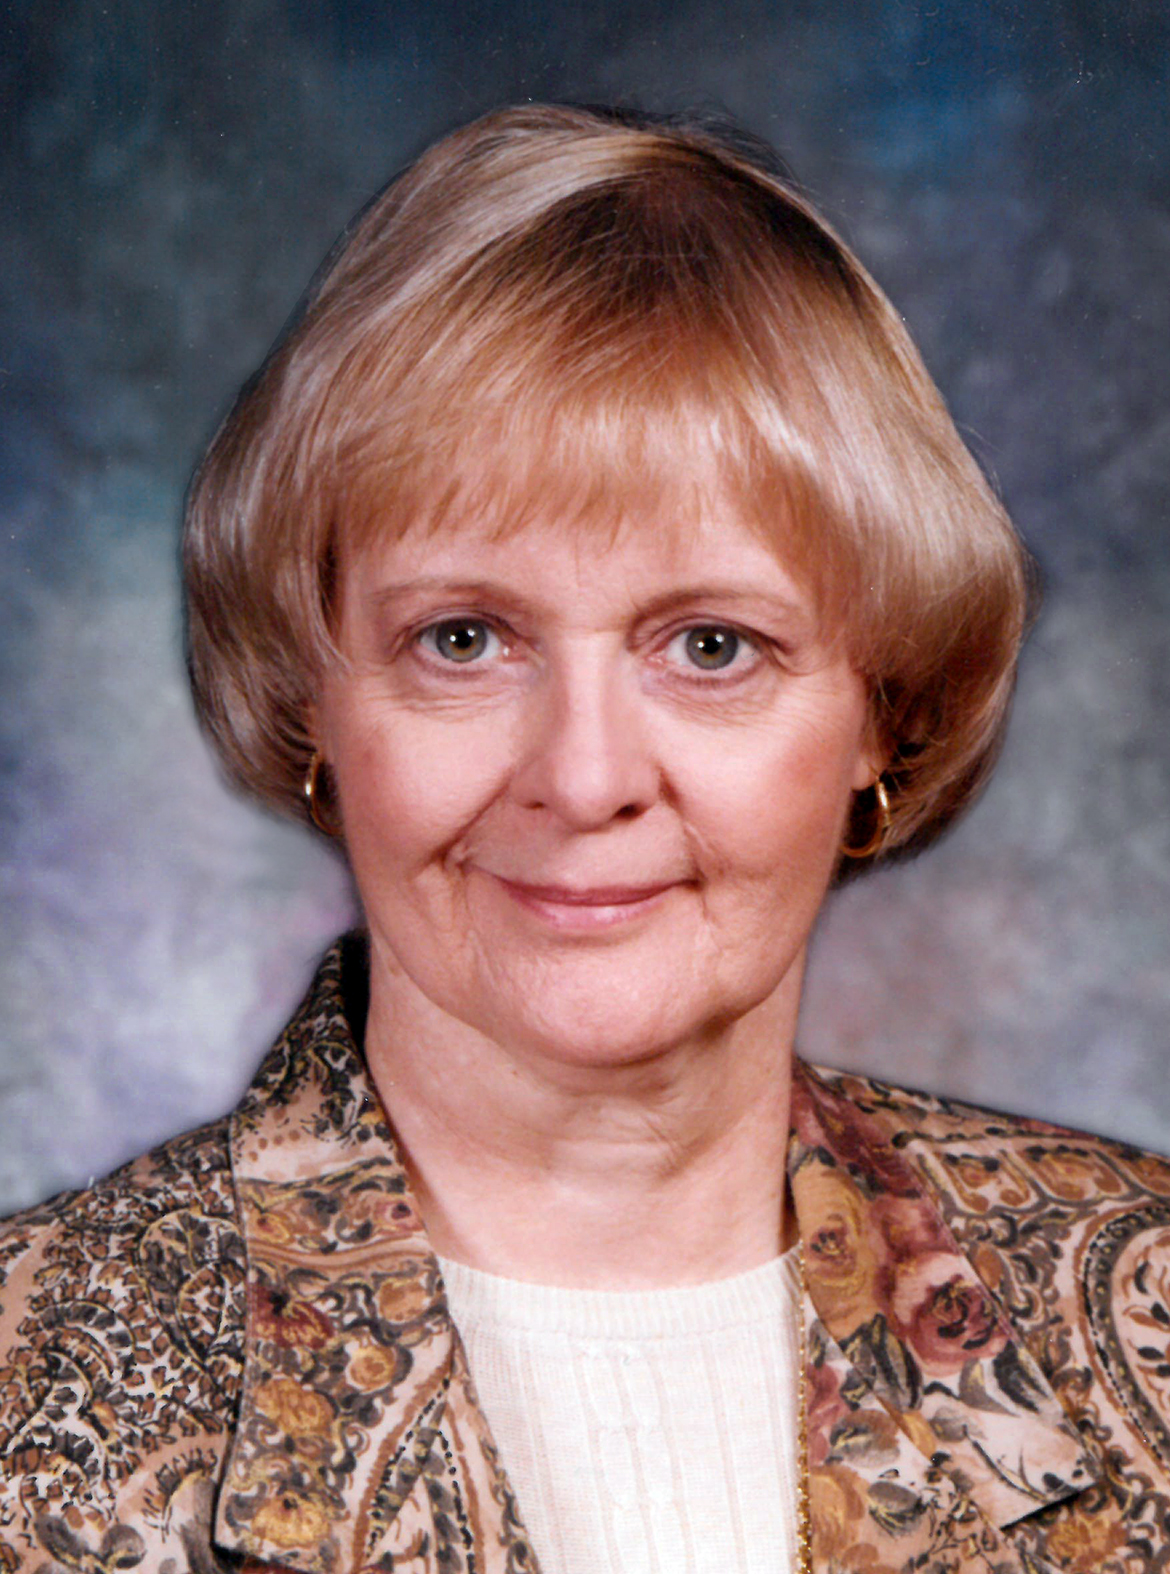 Obituary: Janet Floyd Loved Cooking